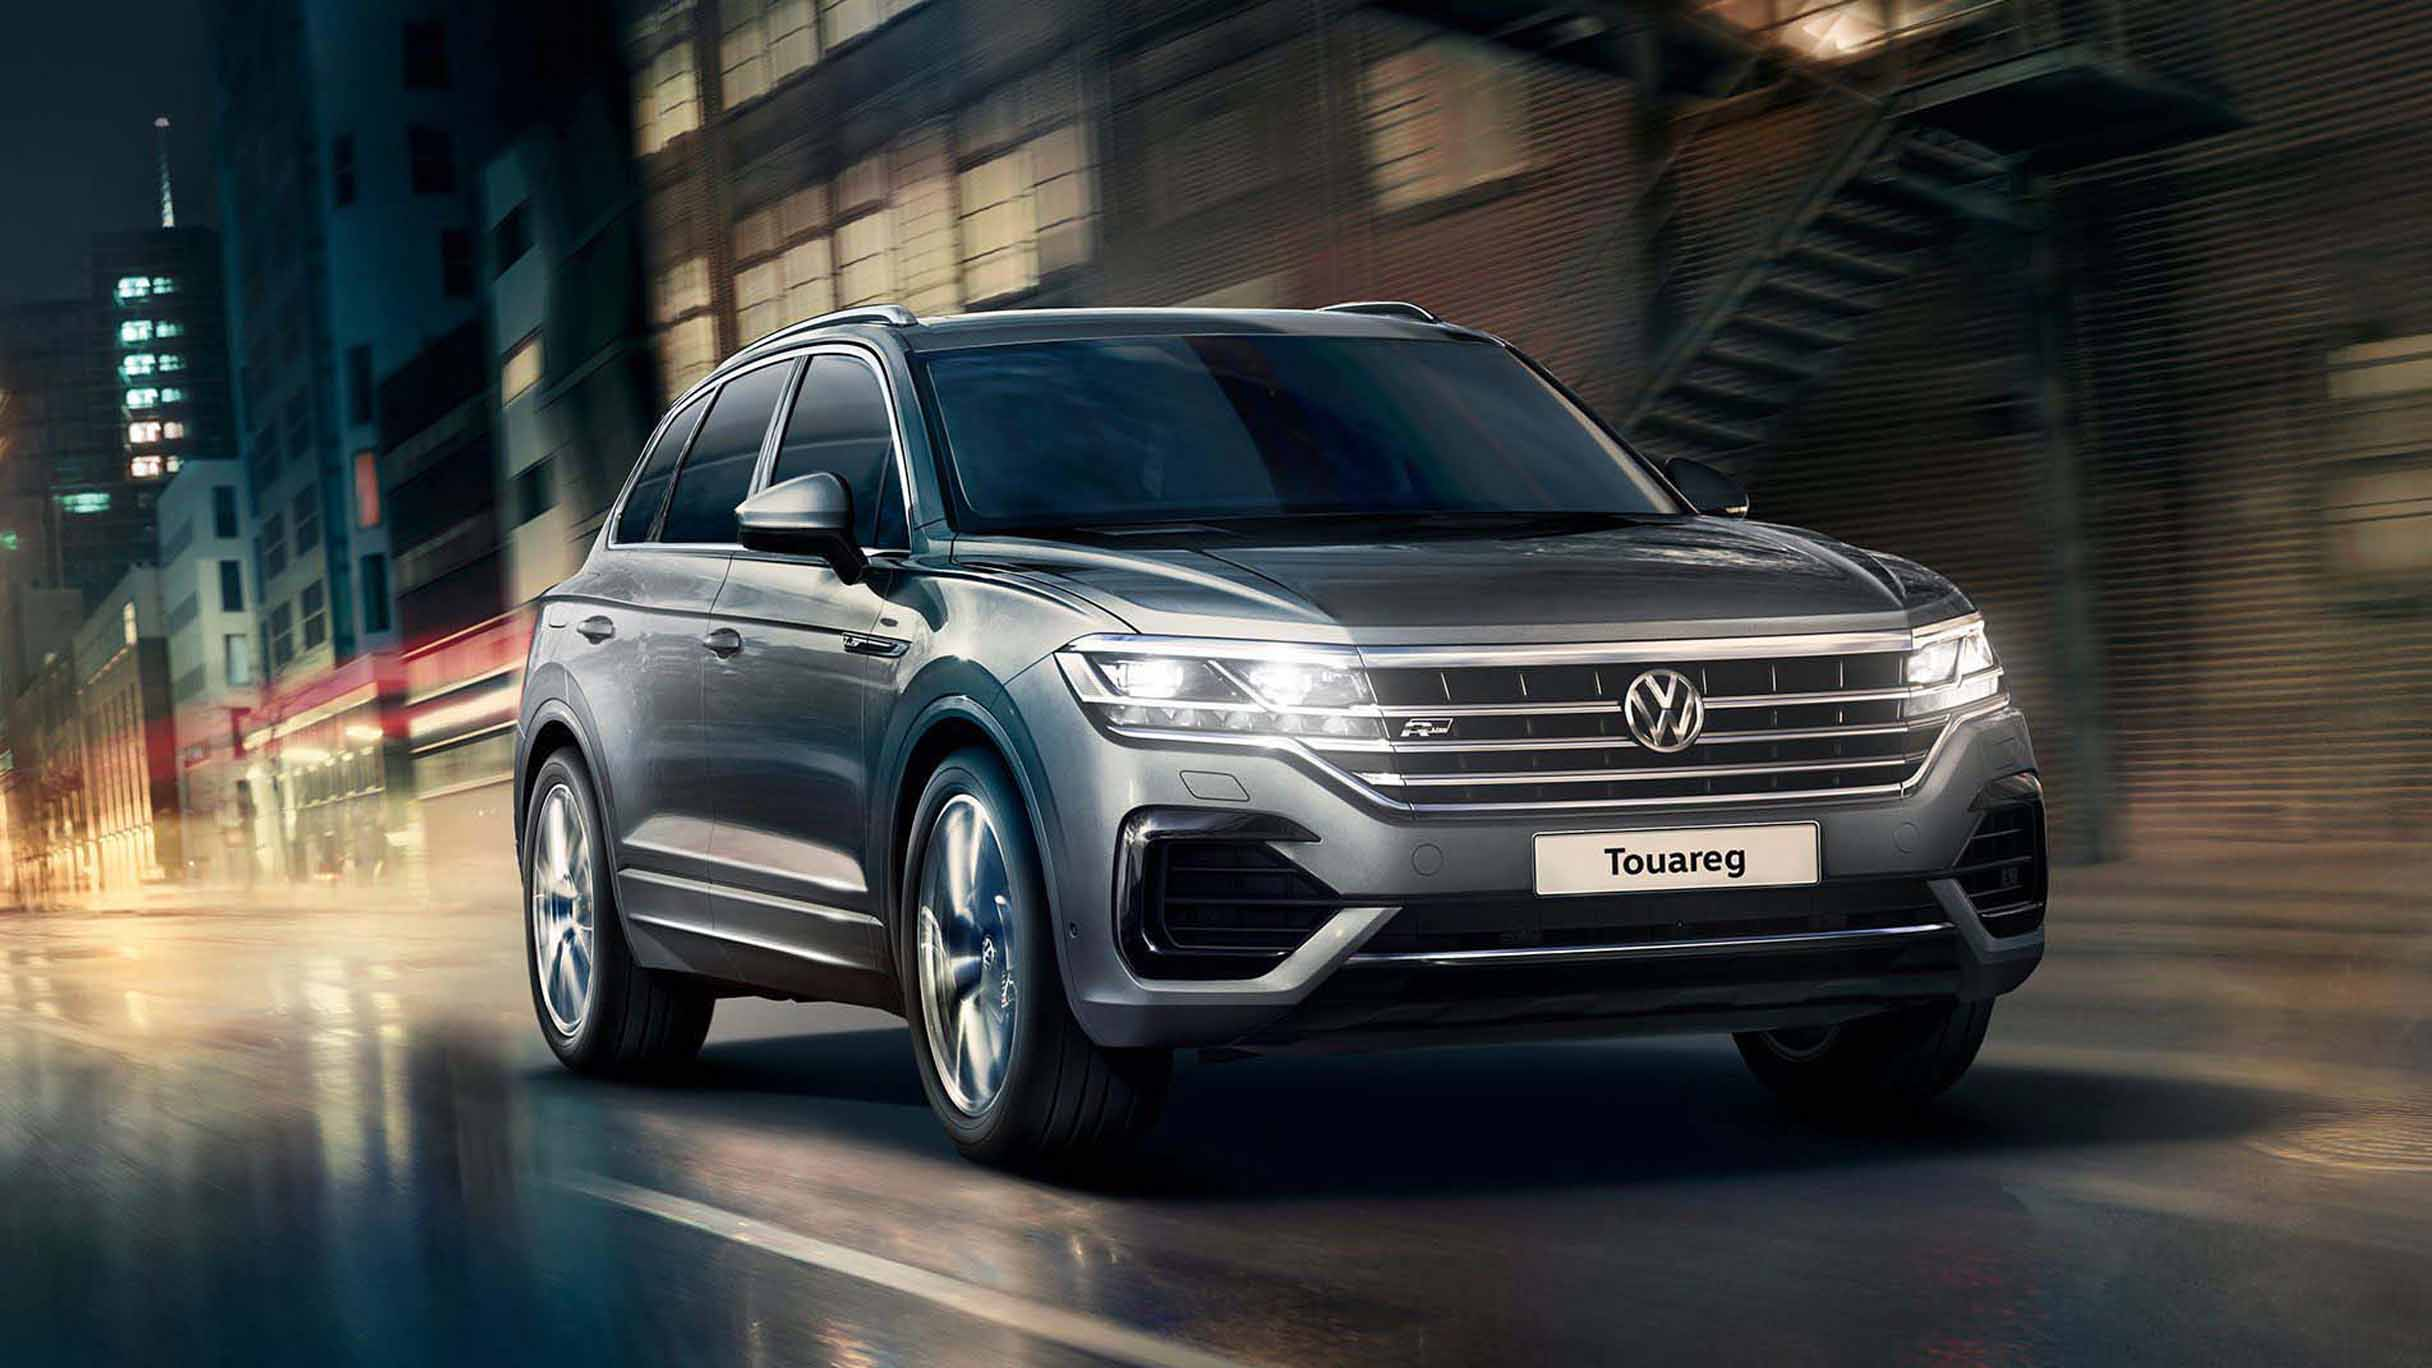 Volkswagen Touareg specs and prices